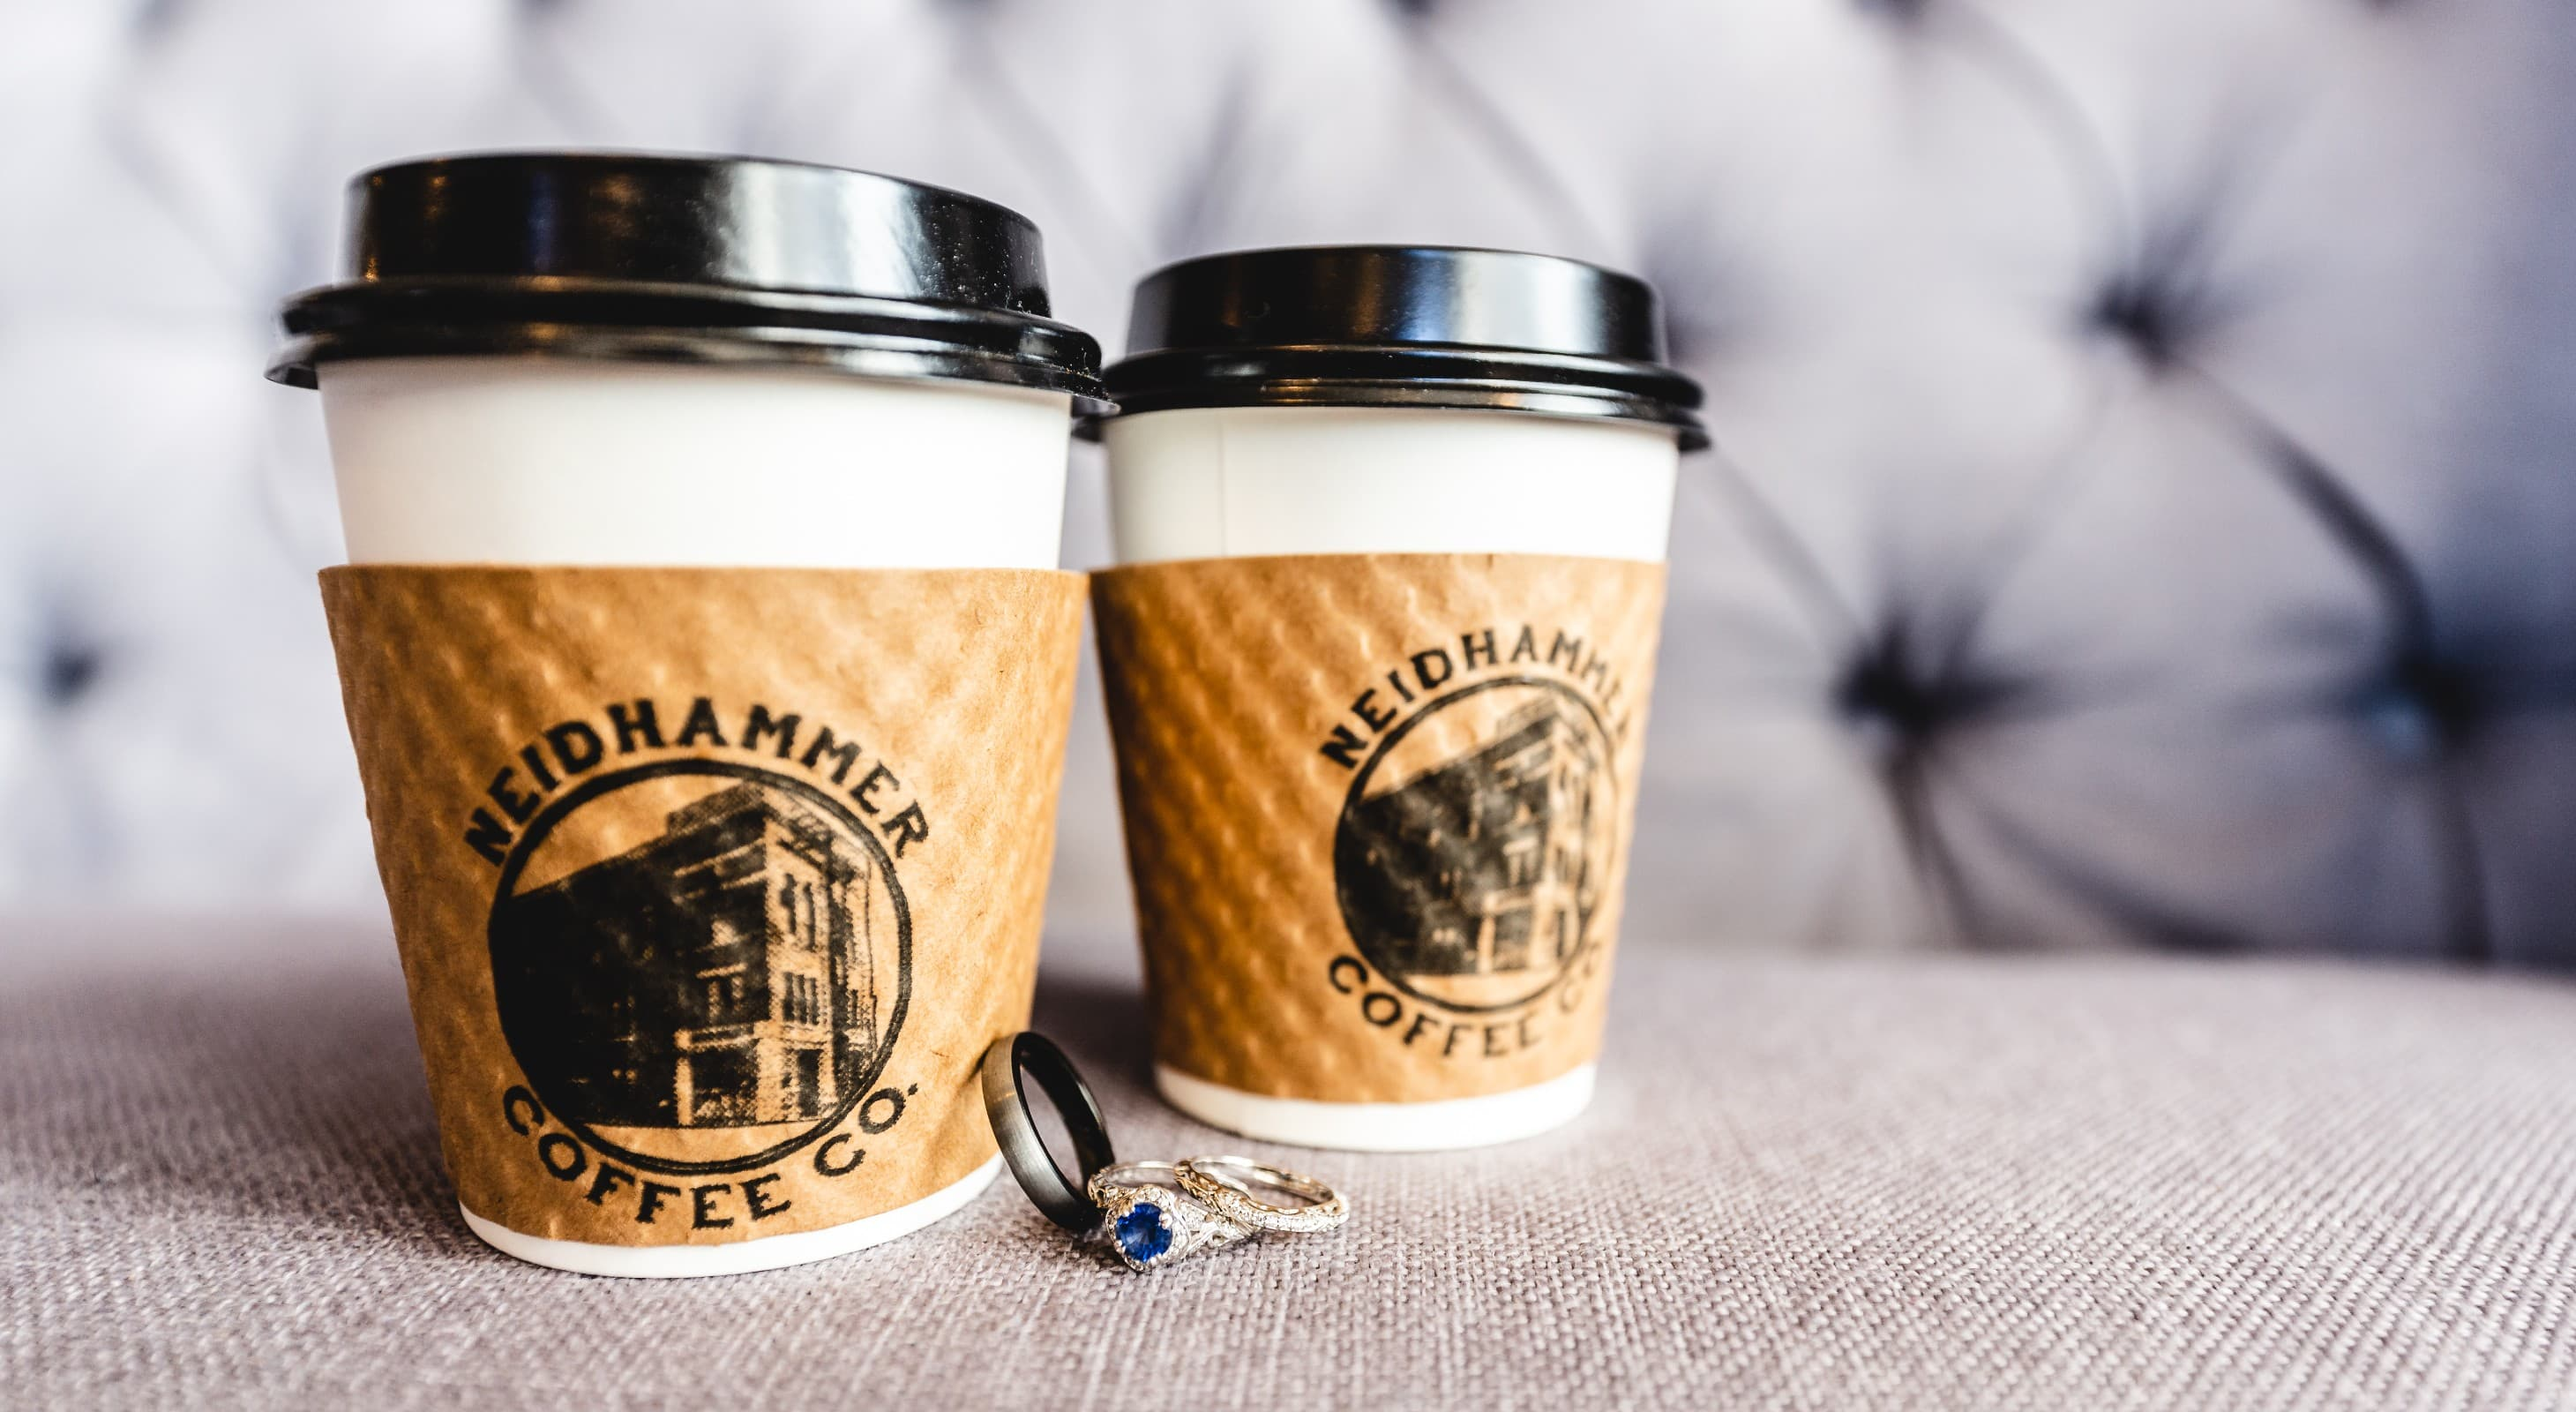 Up close shot of coffee cups and wedding rings